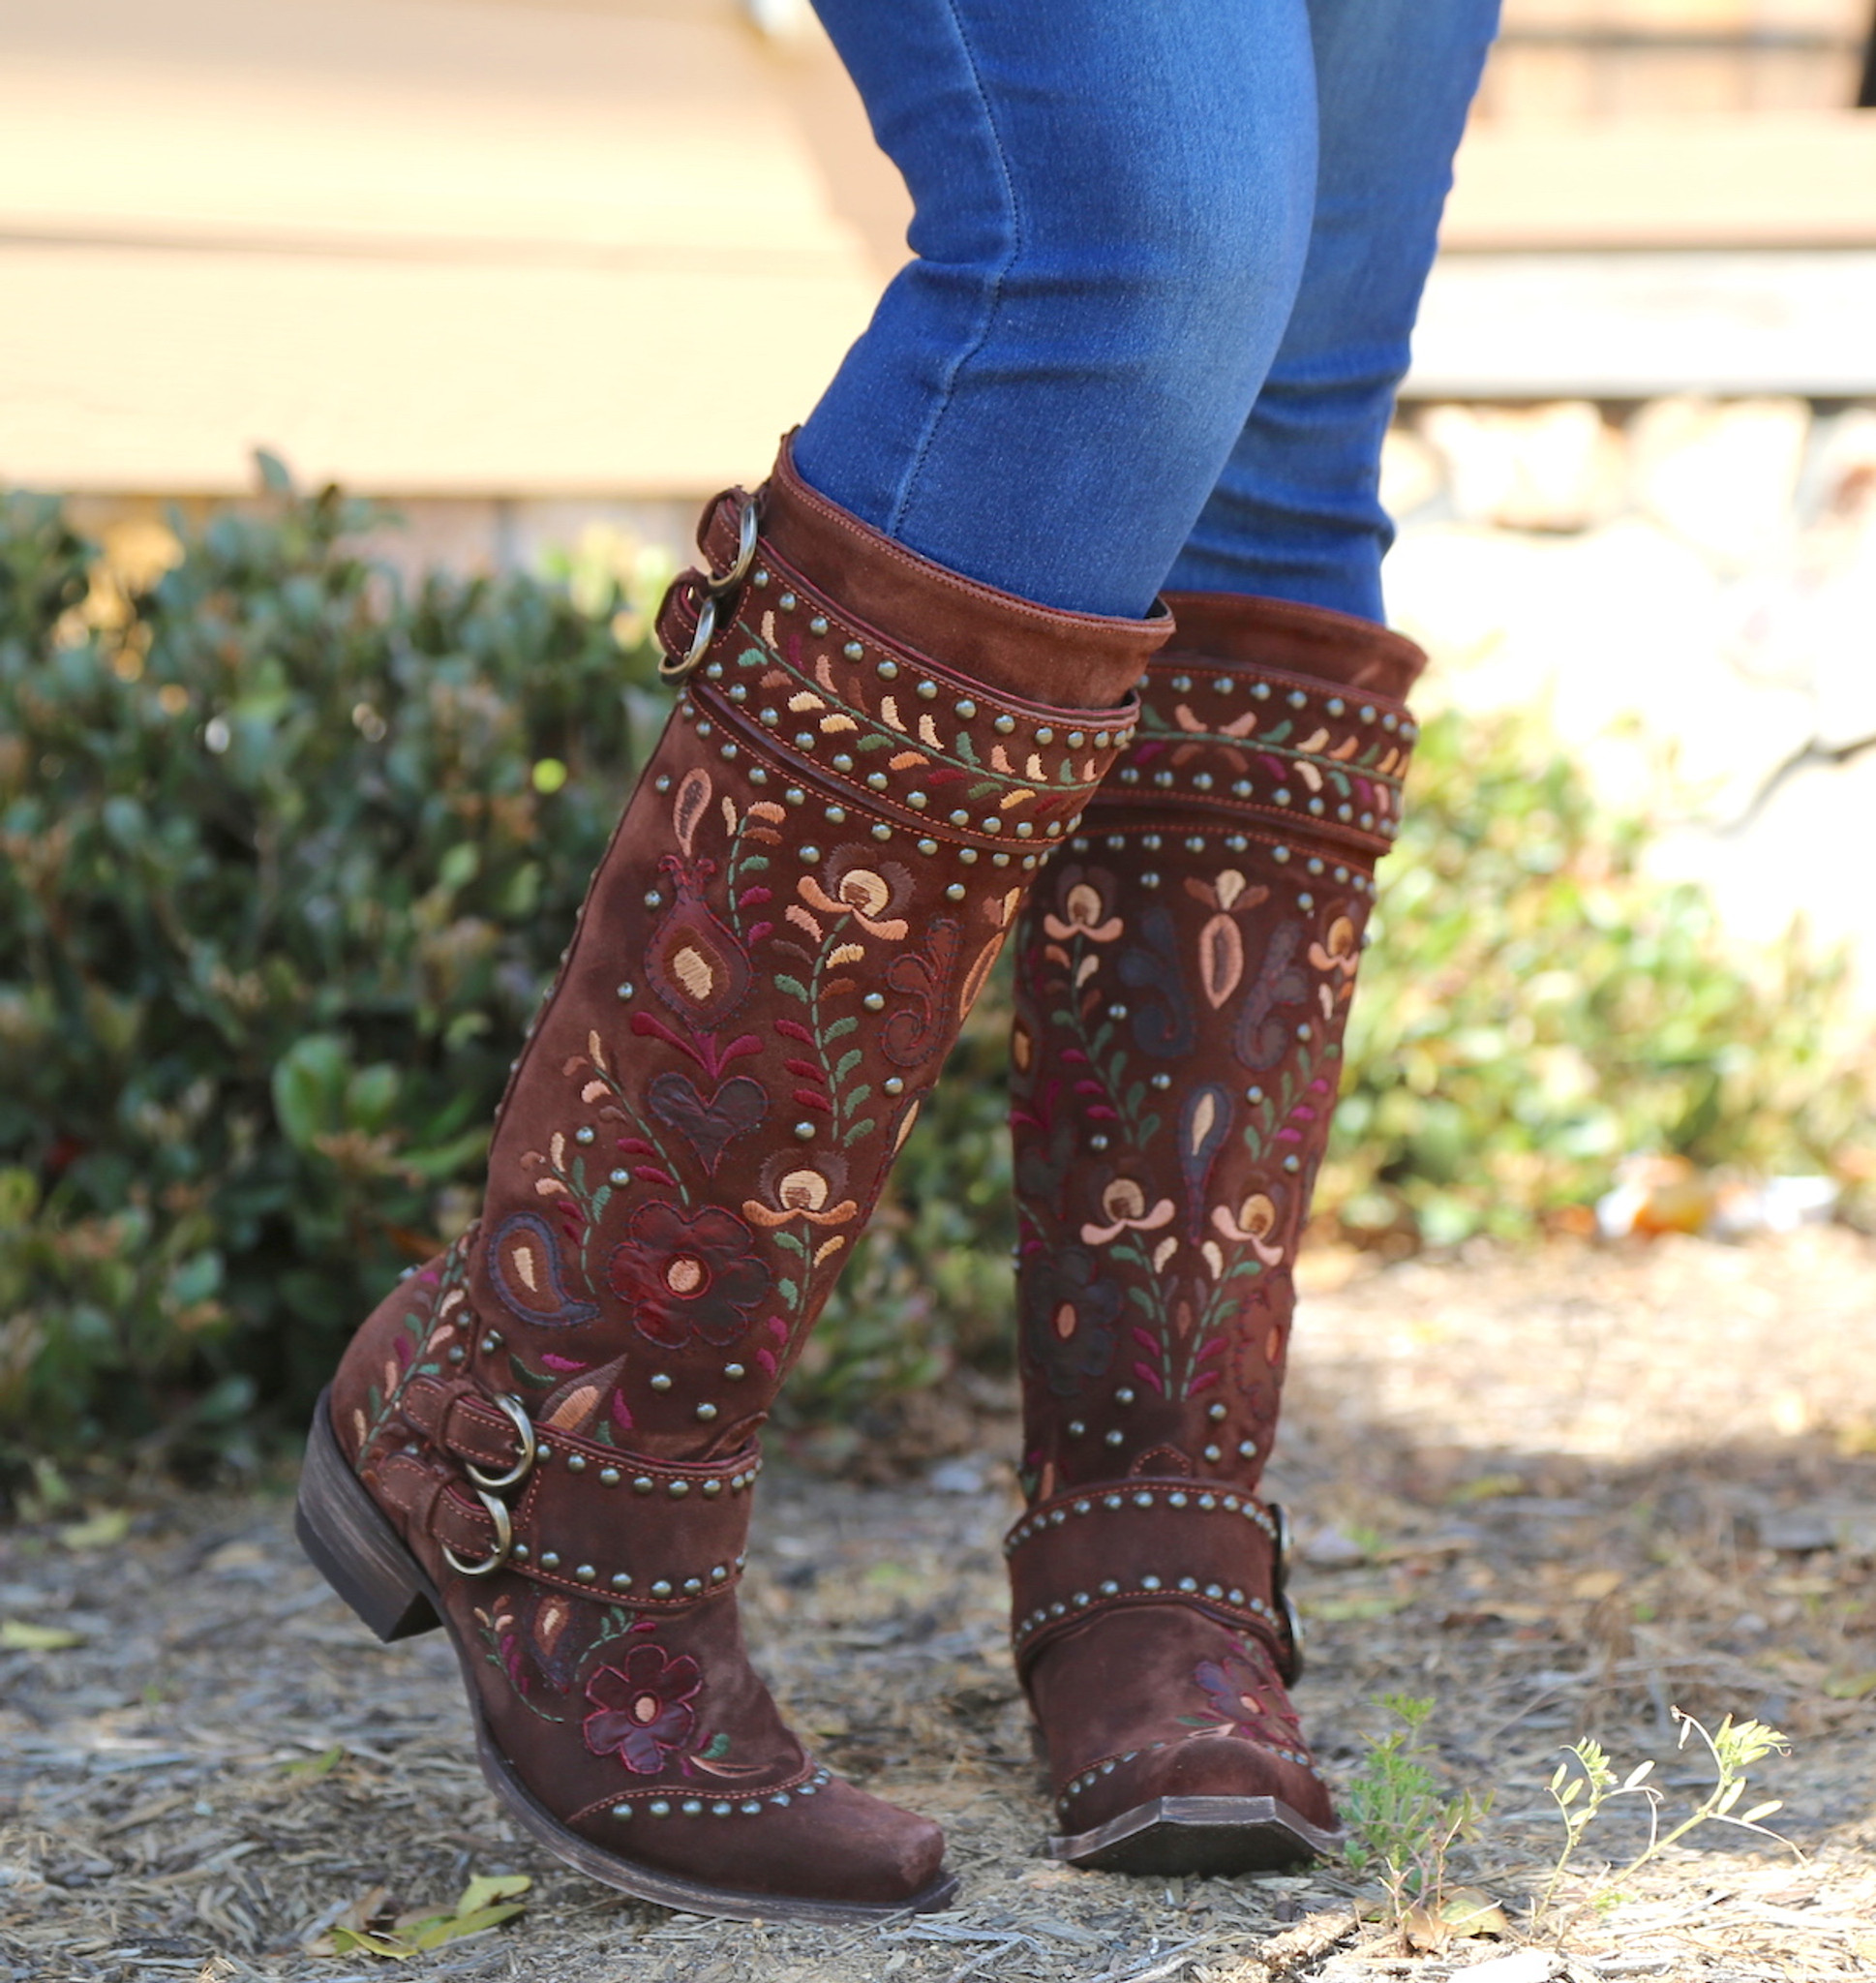 Midori Travelers Double By Old Gringo Travelers Traders Brunette Boots Ddl0321 Picture Rivertrail Mercantile Double By Old Gringo Travelers Traders Brunette Ddl0321